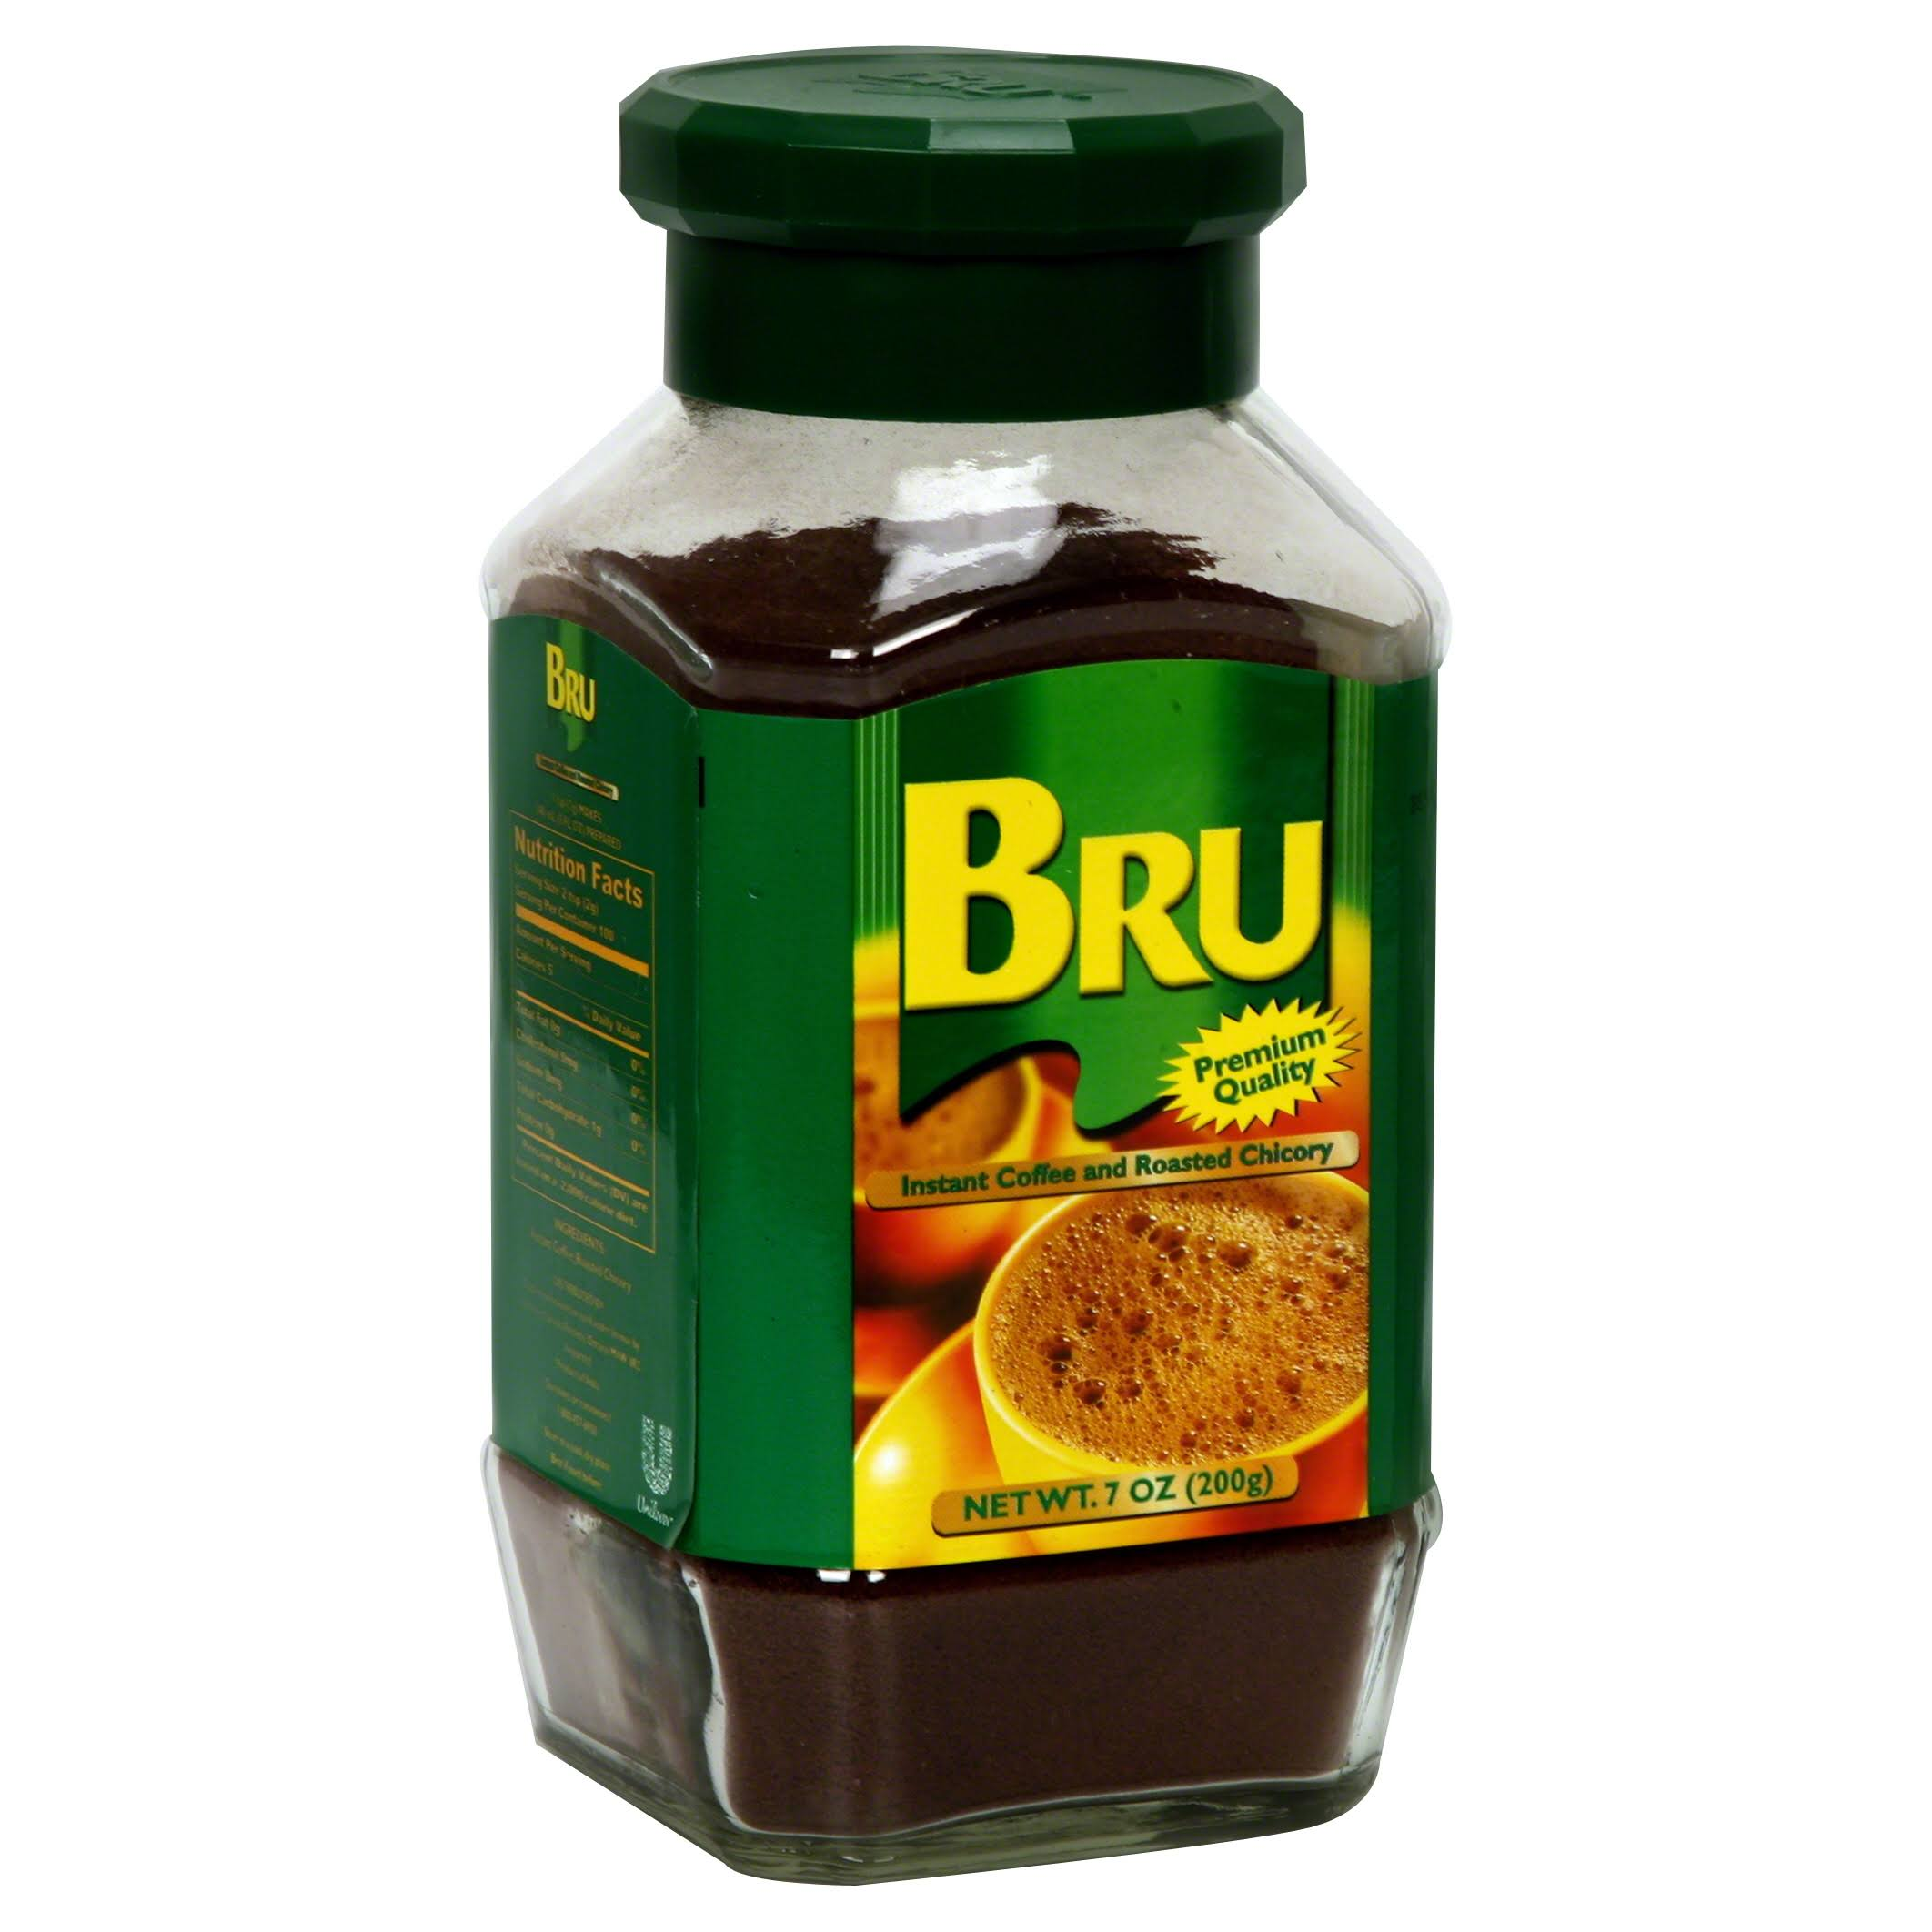 Bru Instant Coffee & Roasted Chicory - 200g